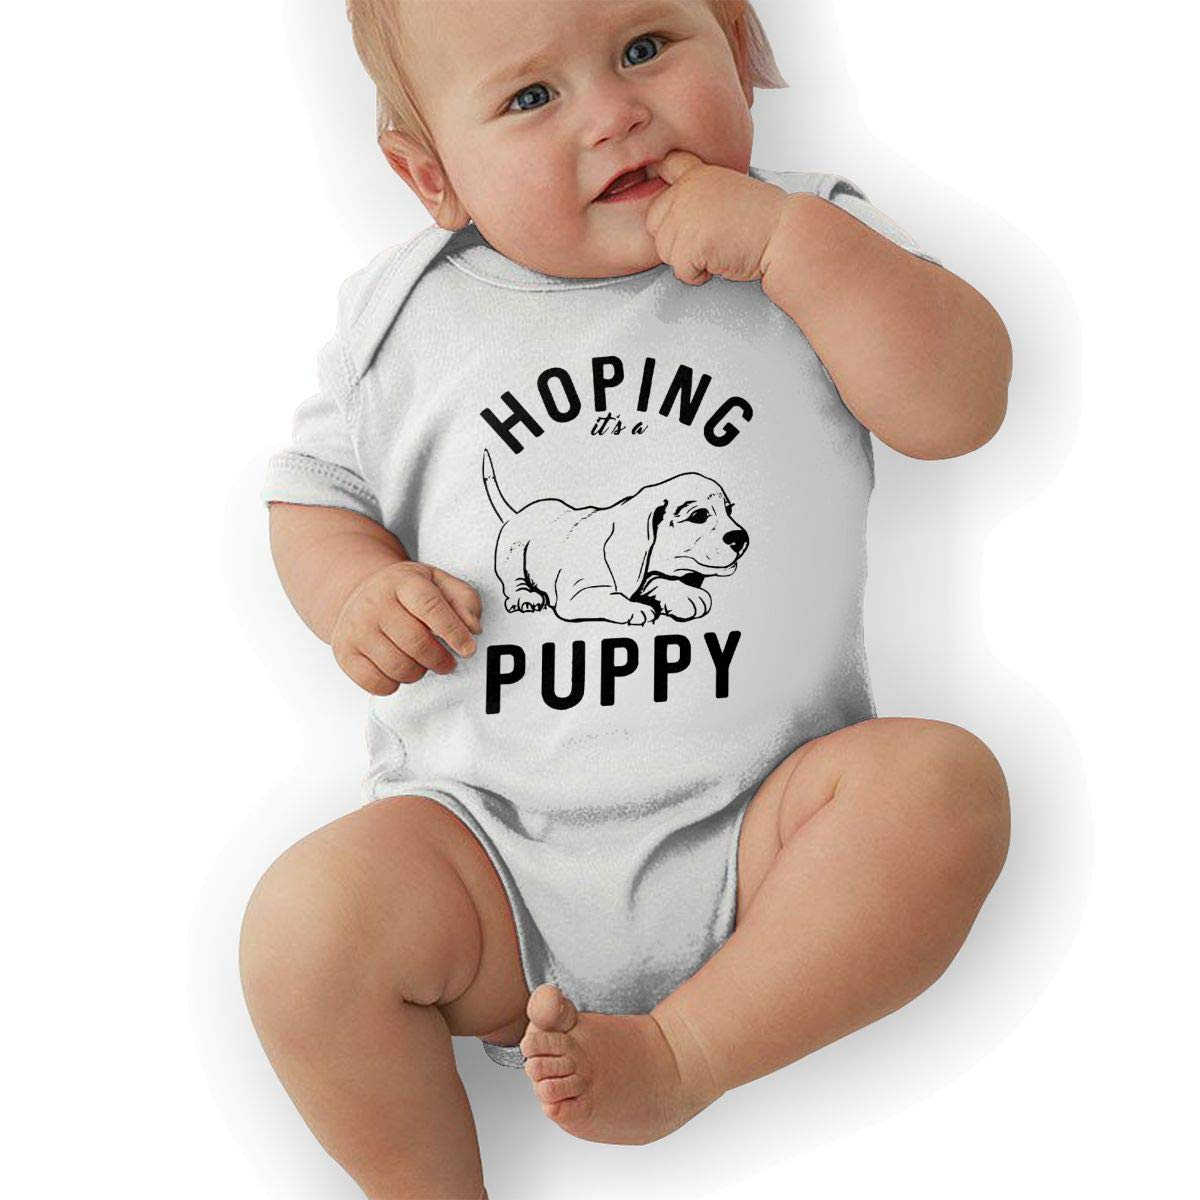 BONLOR Hoping Puppy Baby Boys Girls Jumpsuit Overall Romper Bodysuit Summer Clothes White